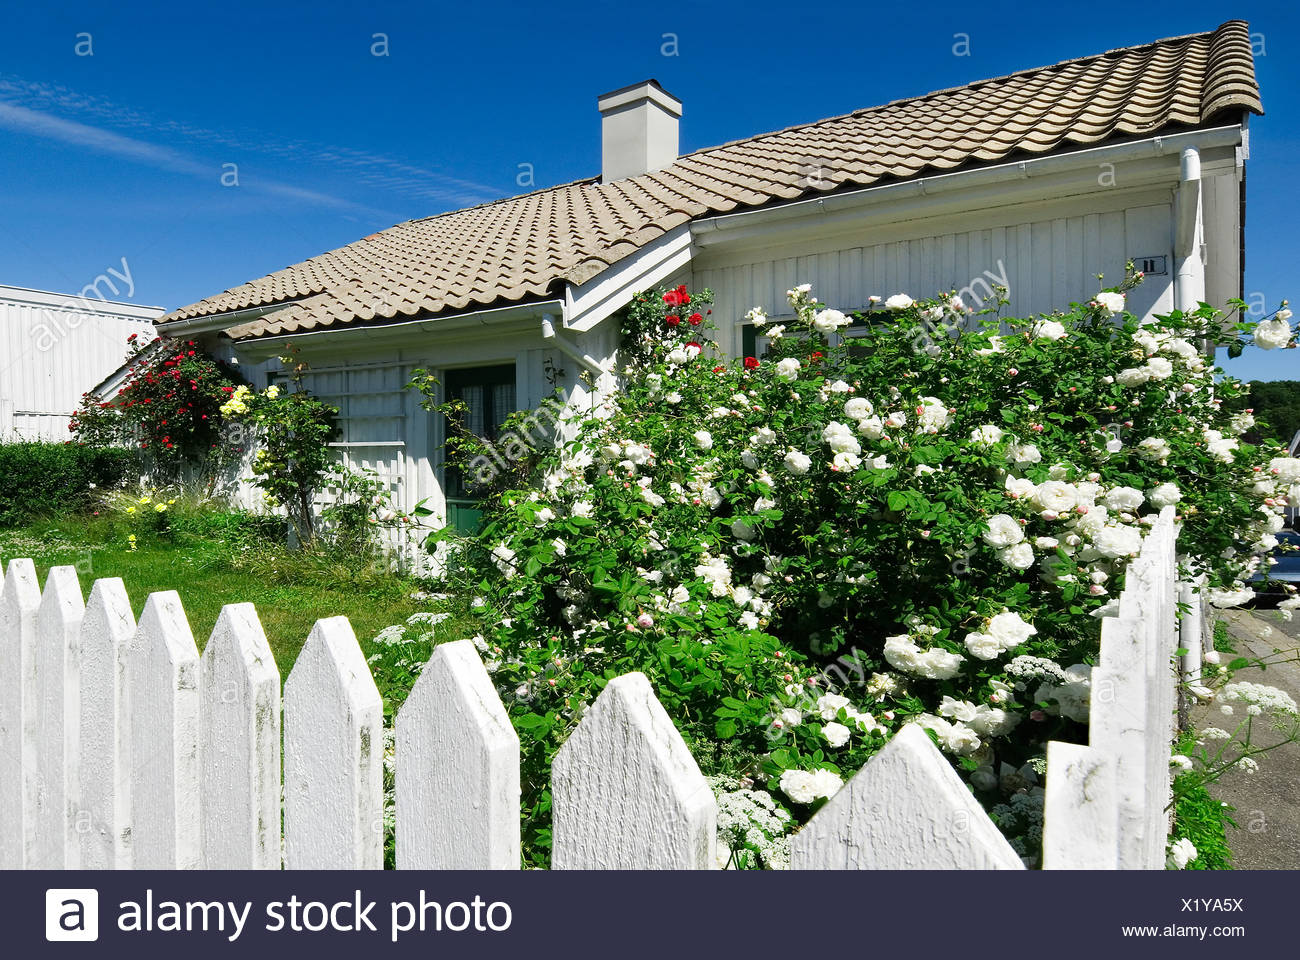 Country house against blue sky with lawn flowers and fence in foreground - Stock Image